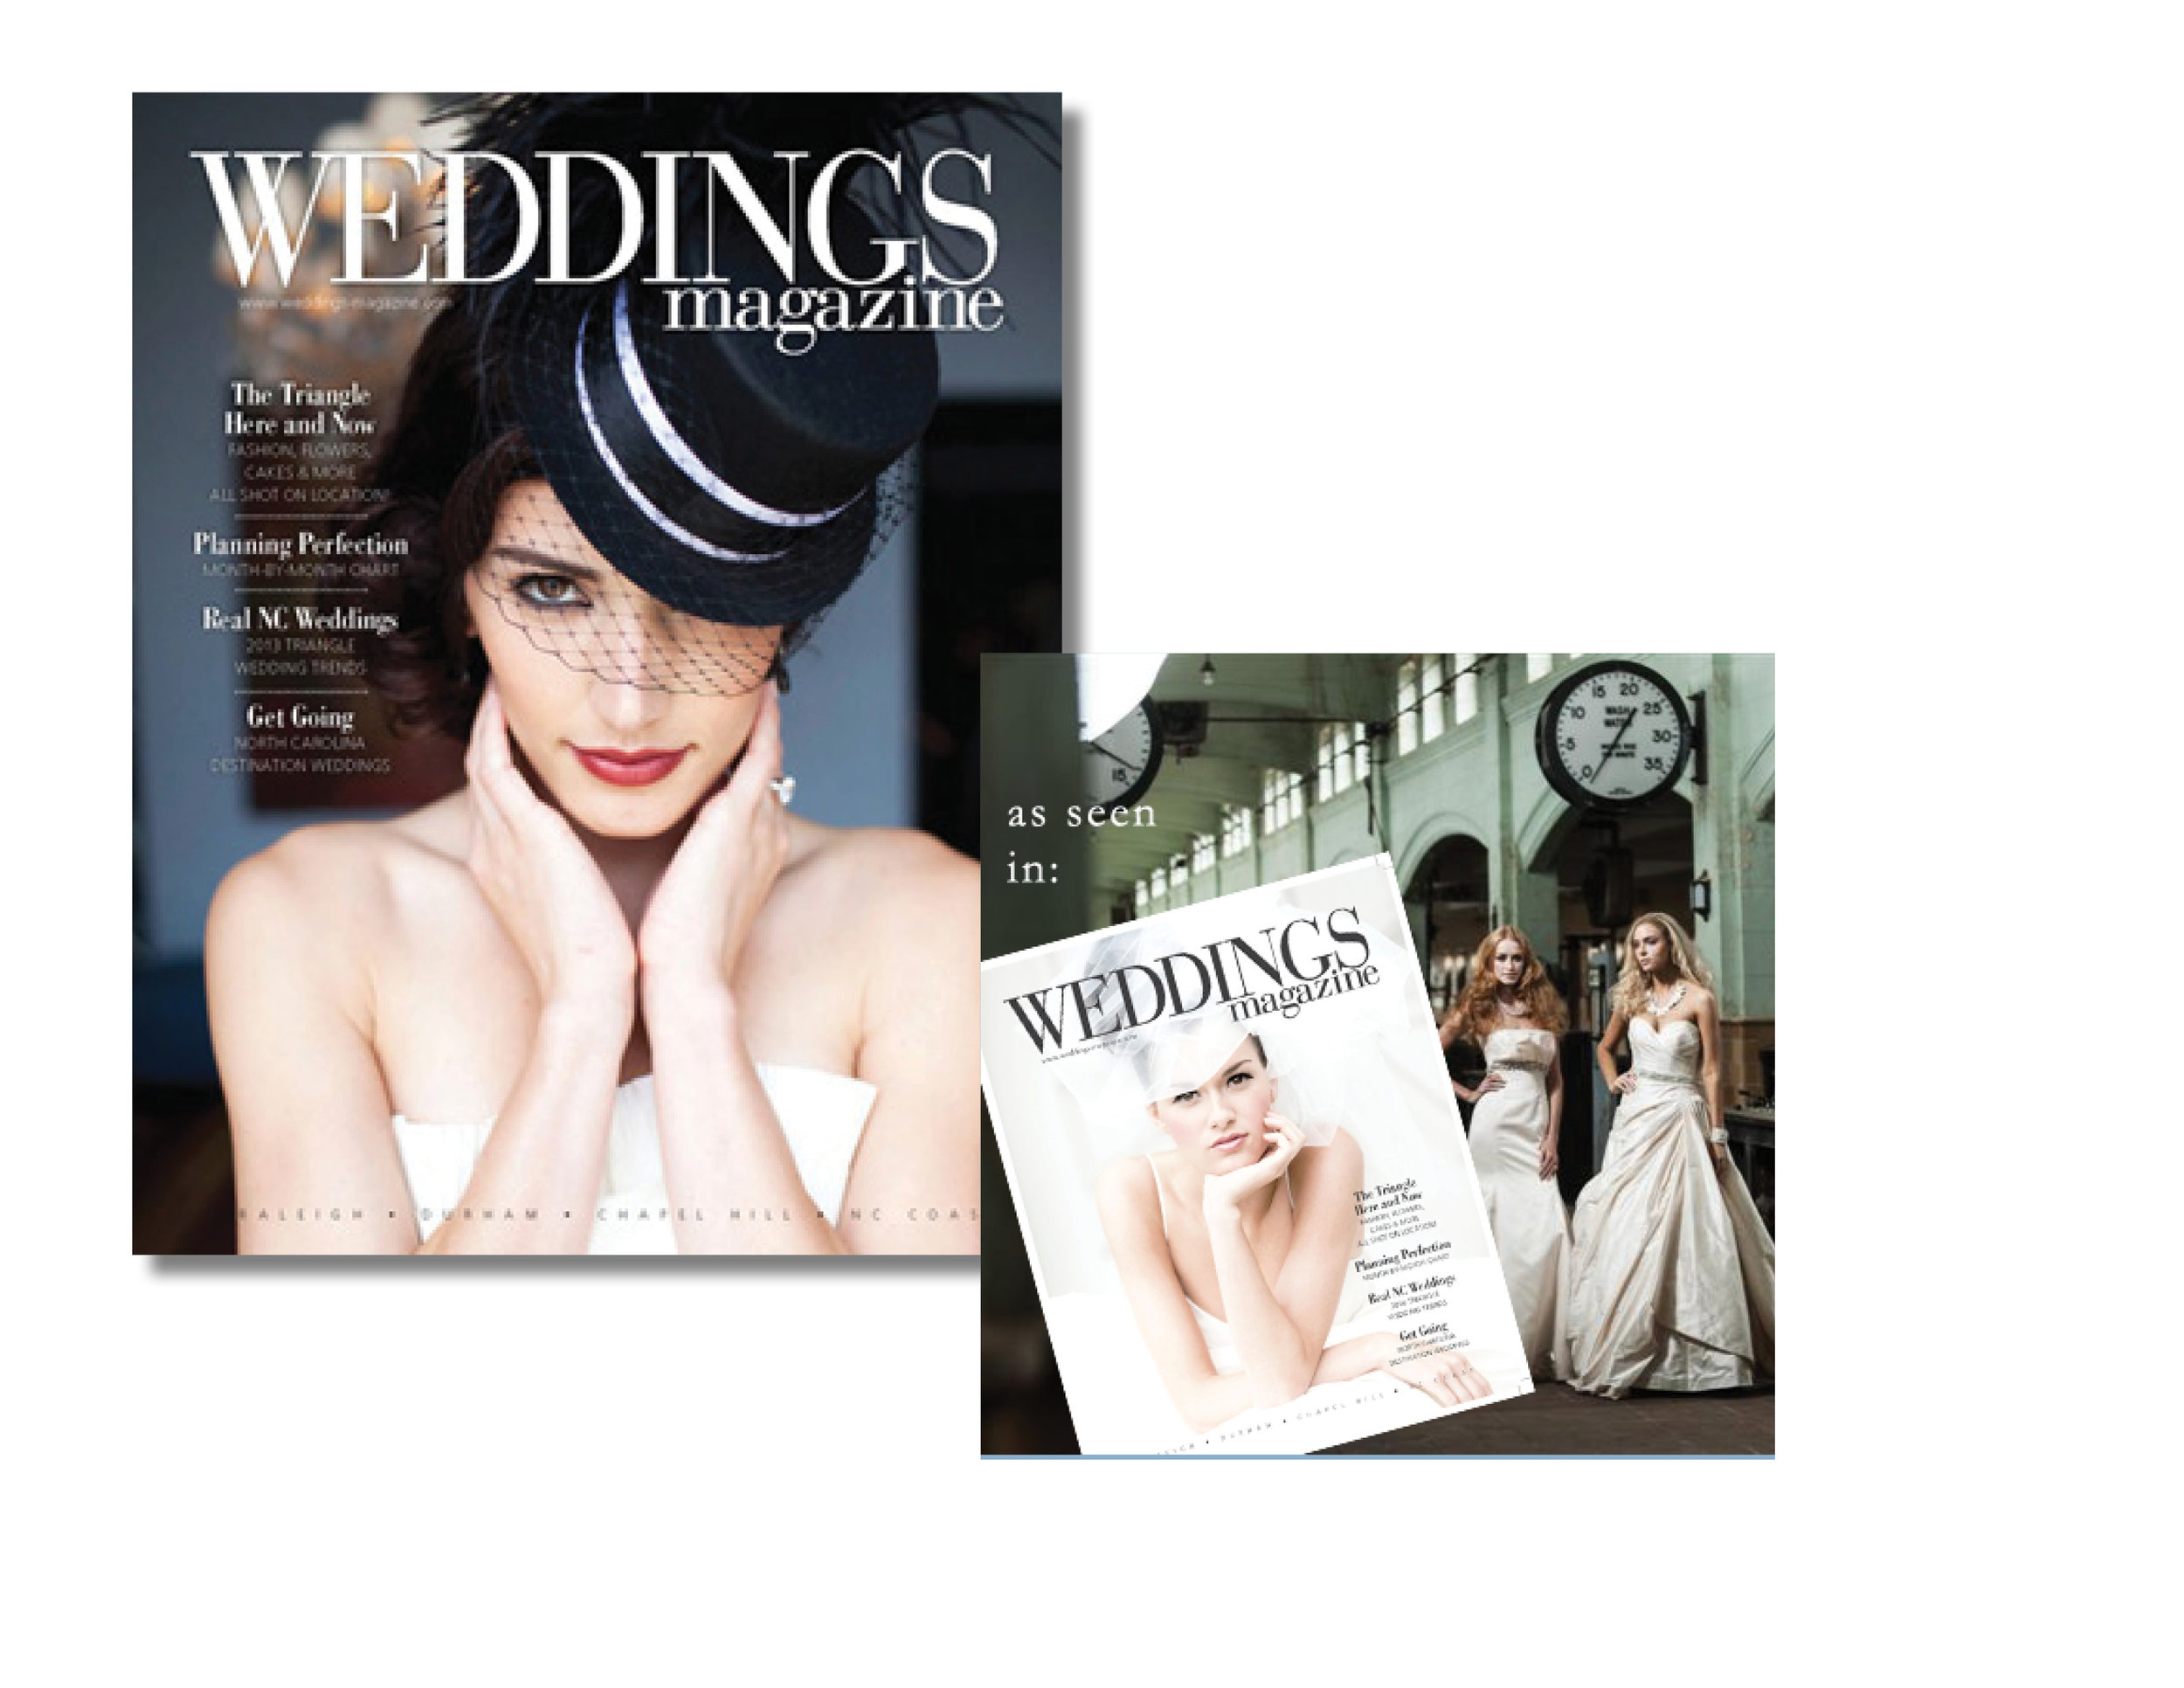 Styling - I provided on-location jewelry styling assistance for Weddings Magazine photoshoots.